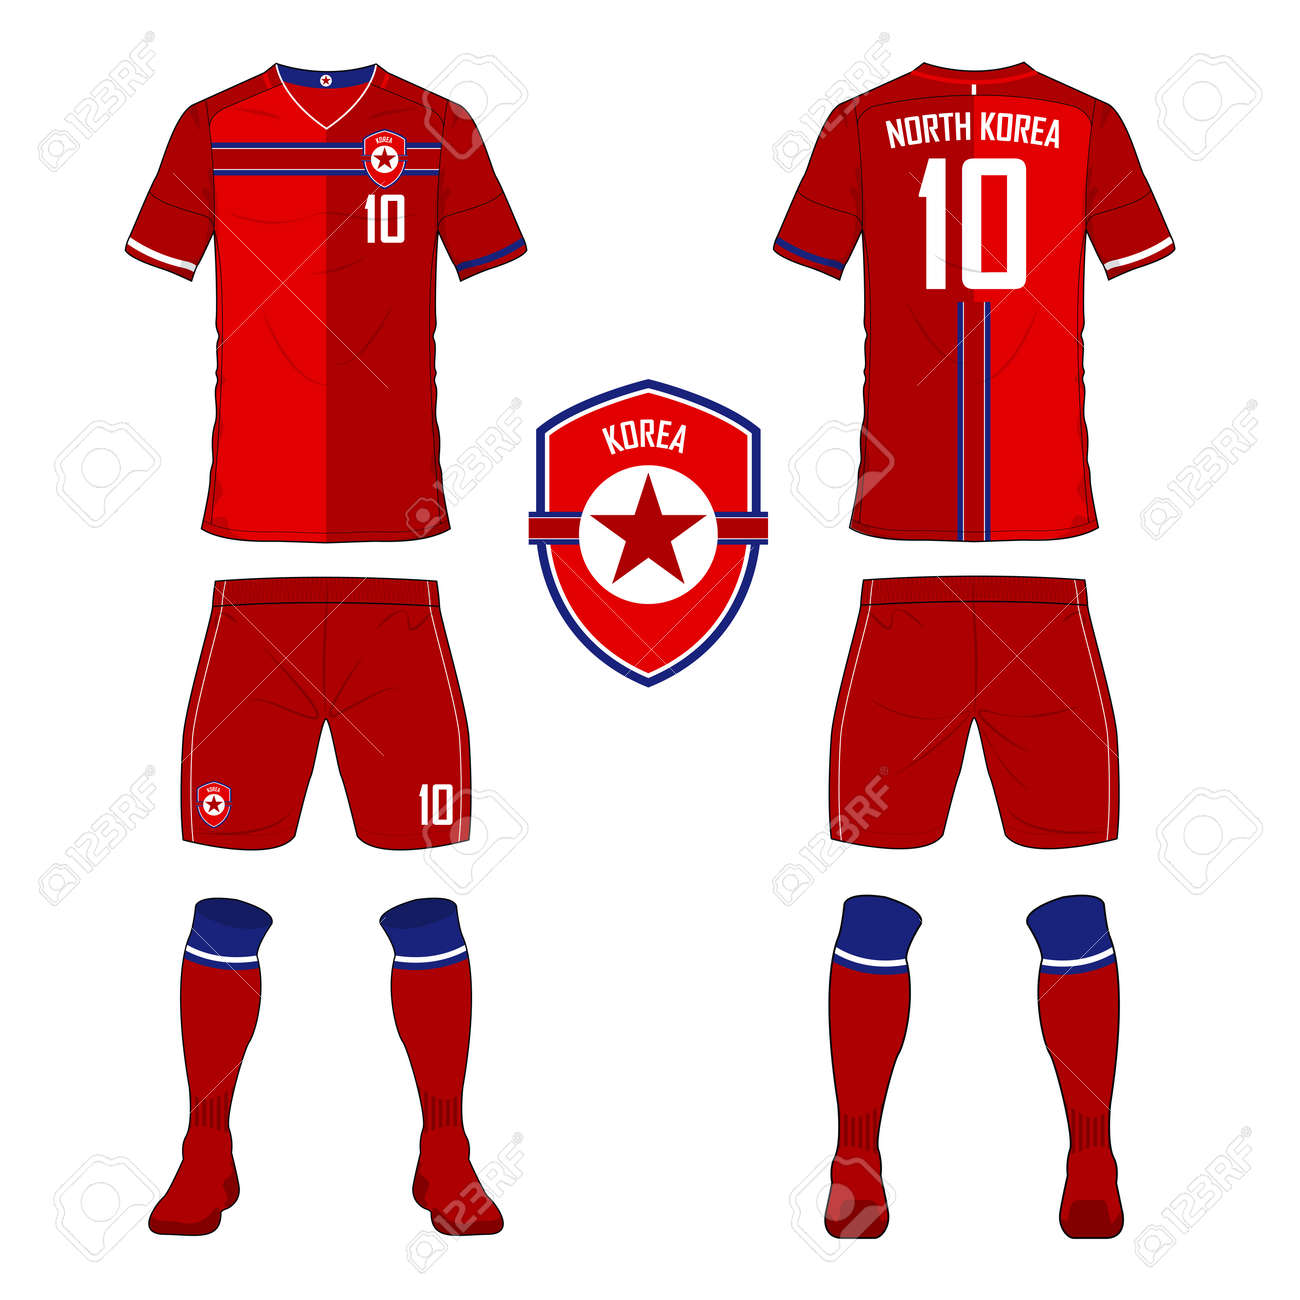 a3eae84c6f7 Set of soccer jersey or football kit template for North Korea national  football team. Front